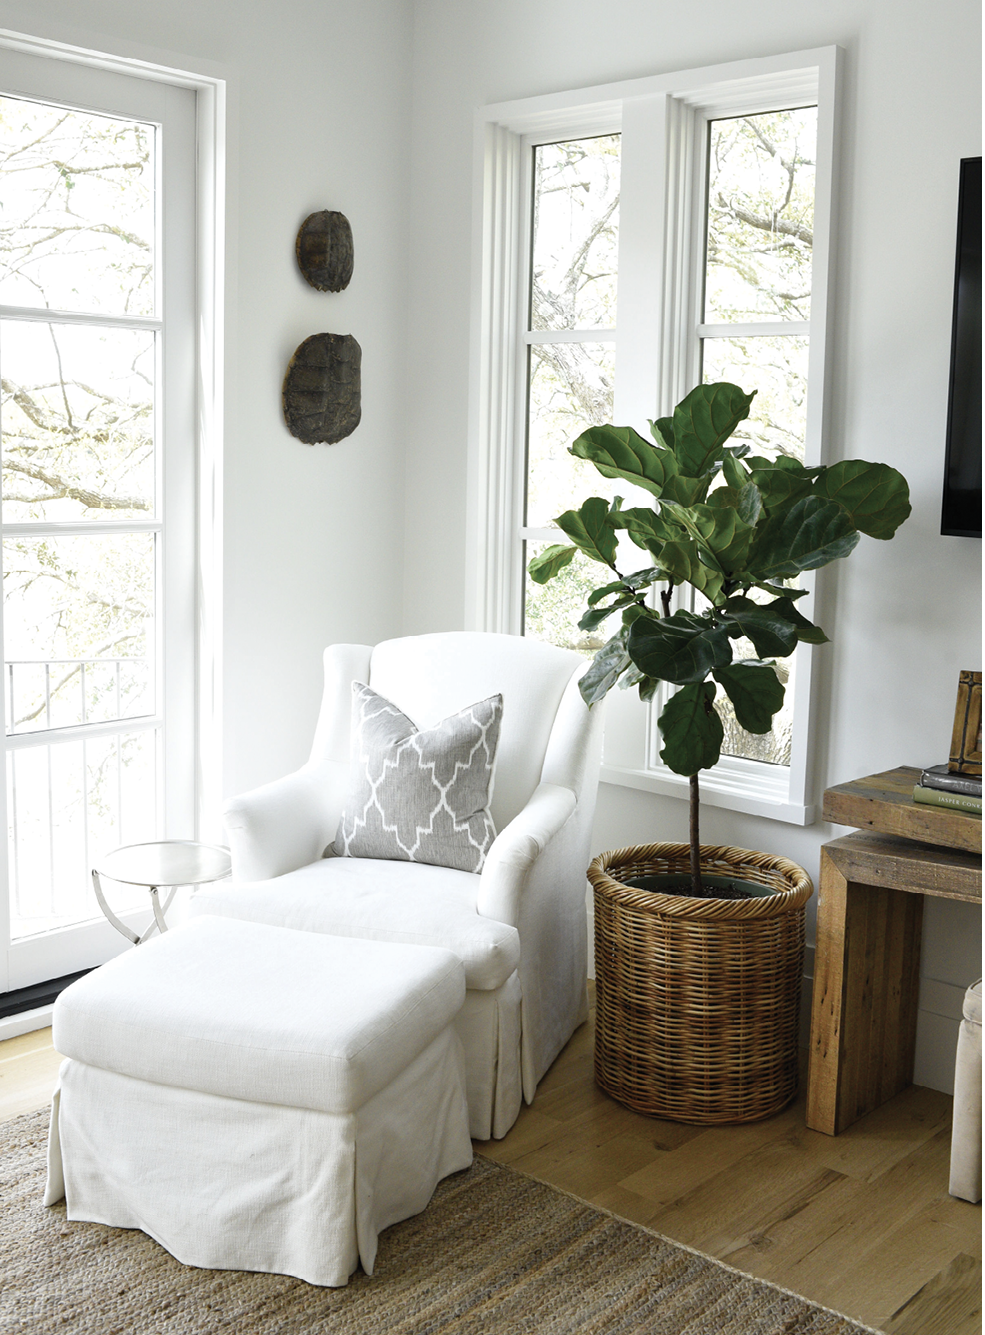 The white chair and ottoman from Acquisitions Interiors makes for a cozy reading nook in the bedroom.